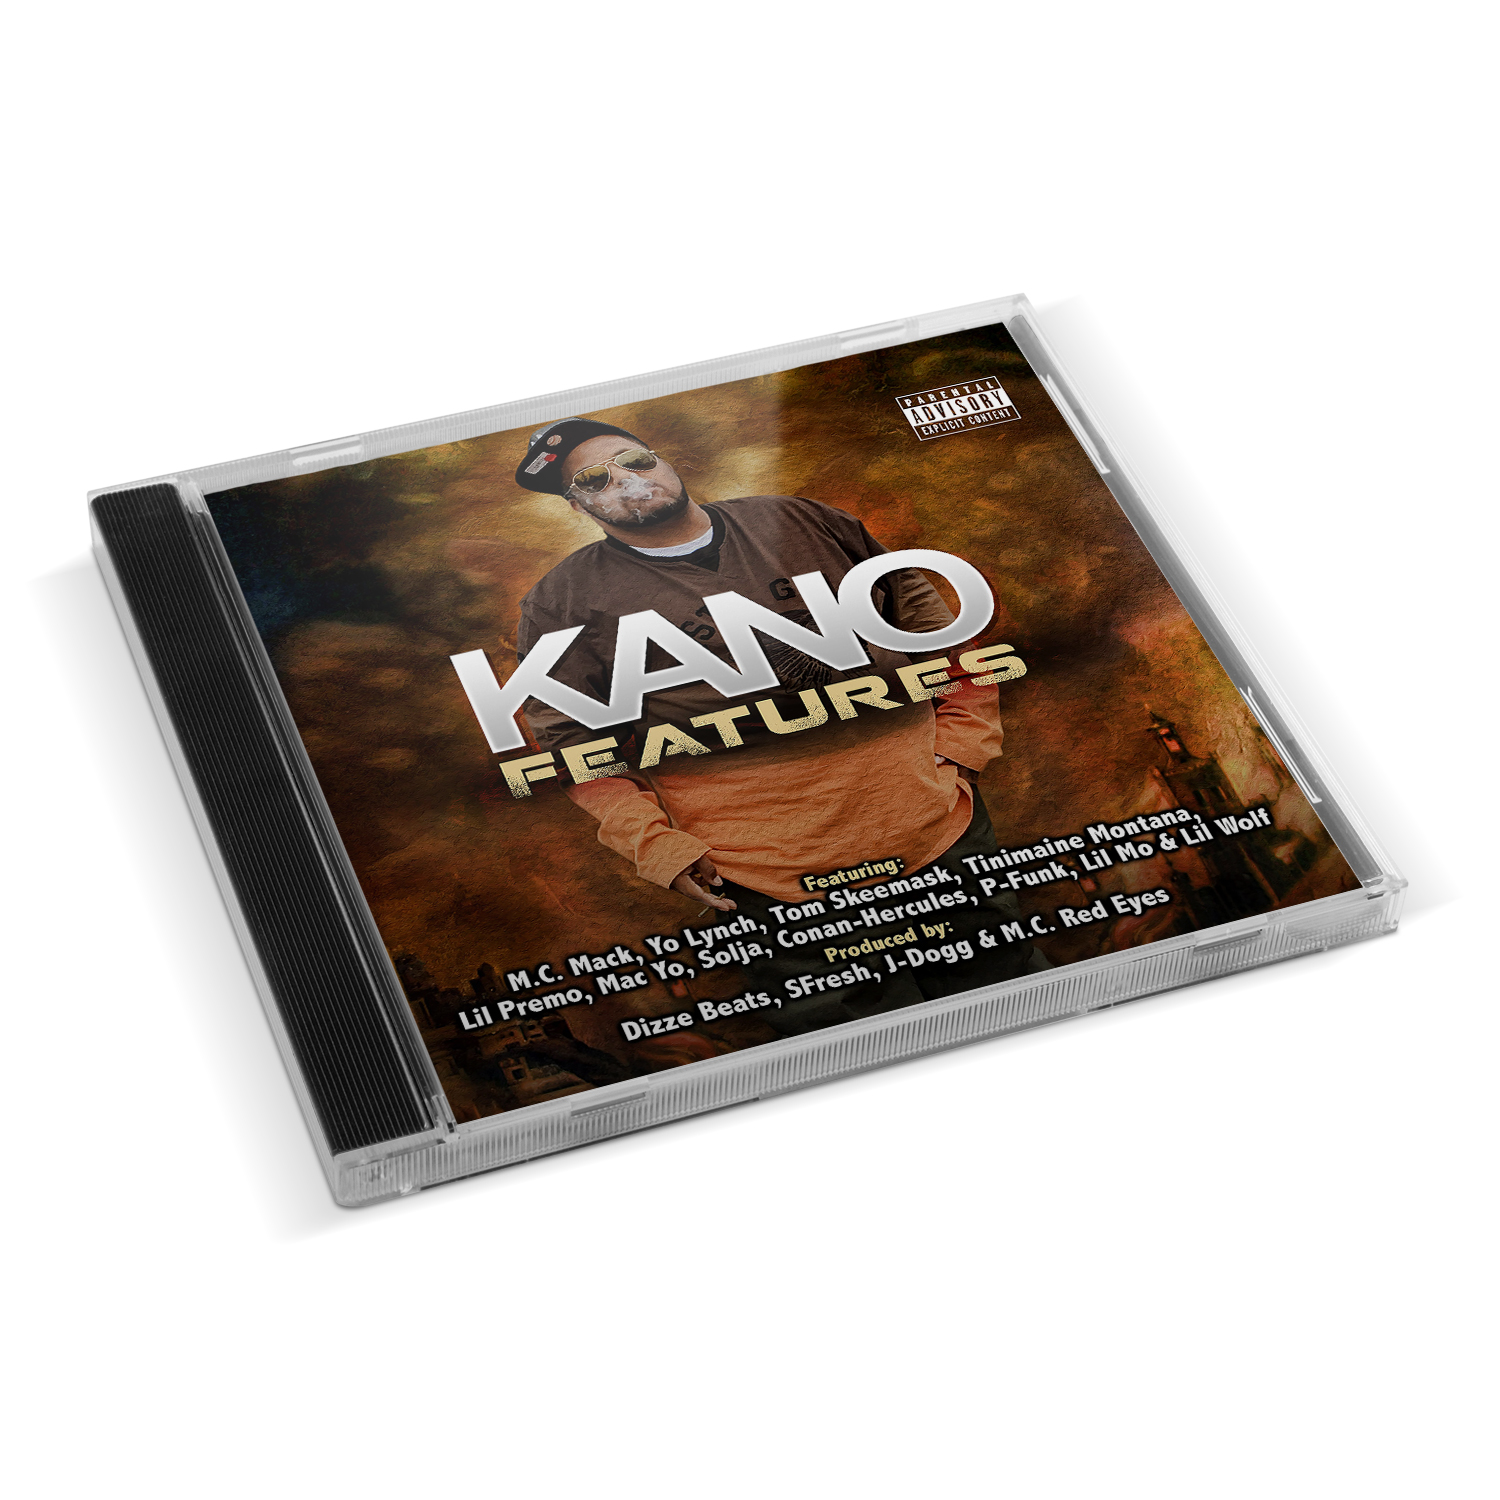 Kano - Features